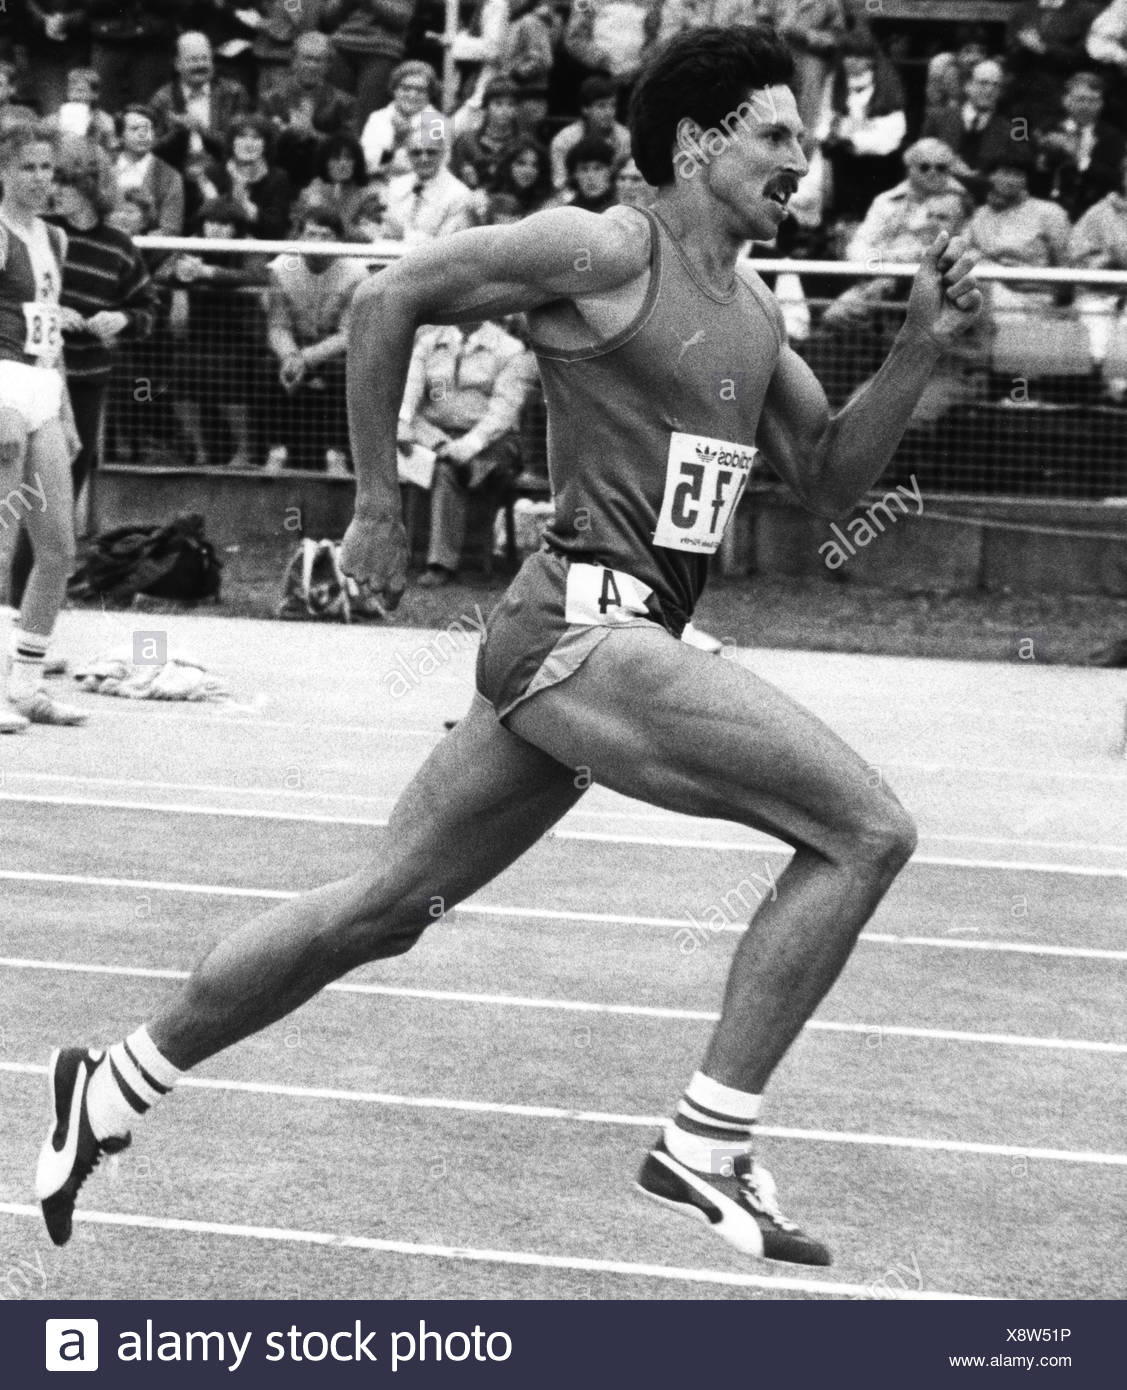 Schmid, Harald, * 29.9.1957, German athlete, during tournament, running, 1986, Additional-Rights-Clearances-NA - Stock Image